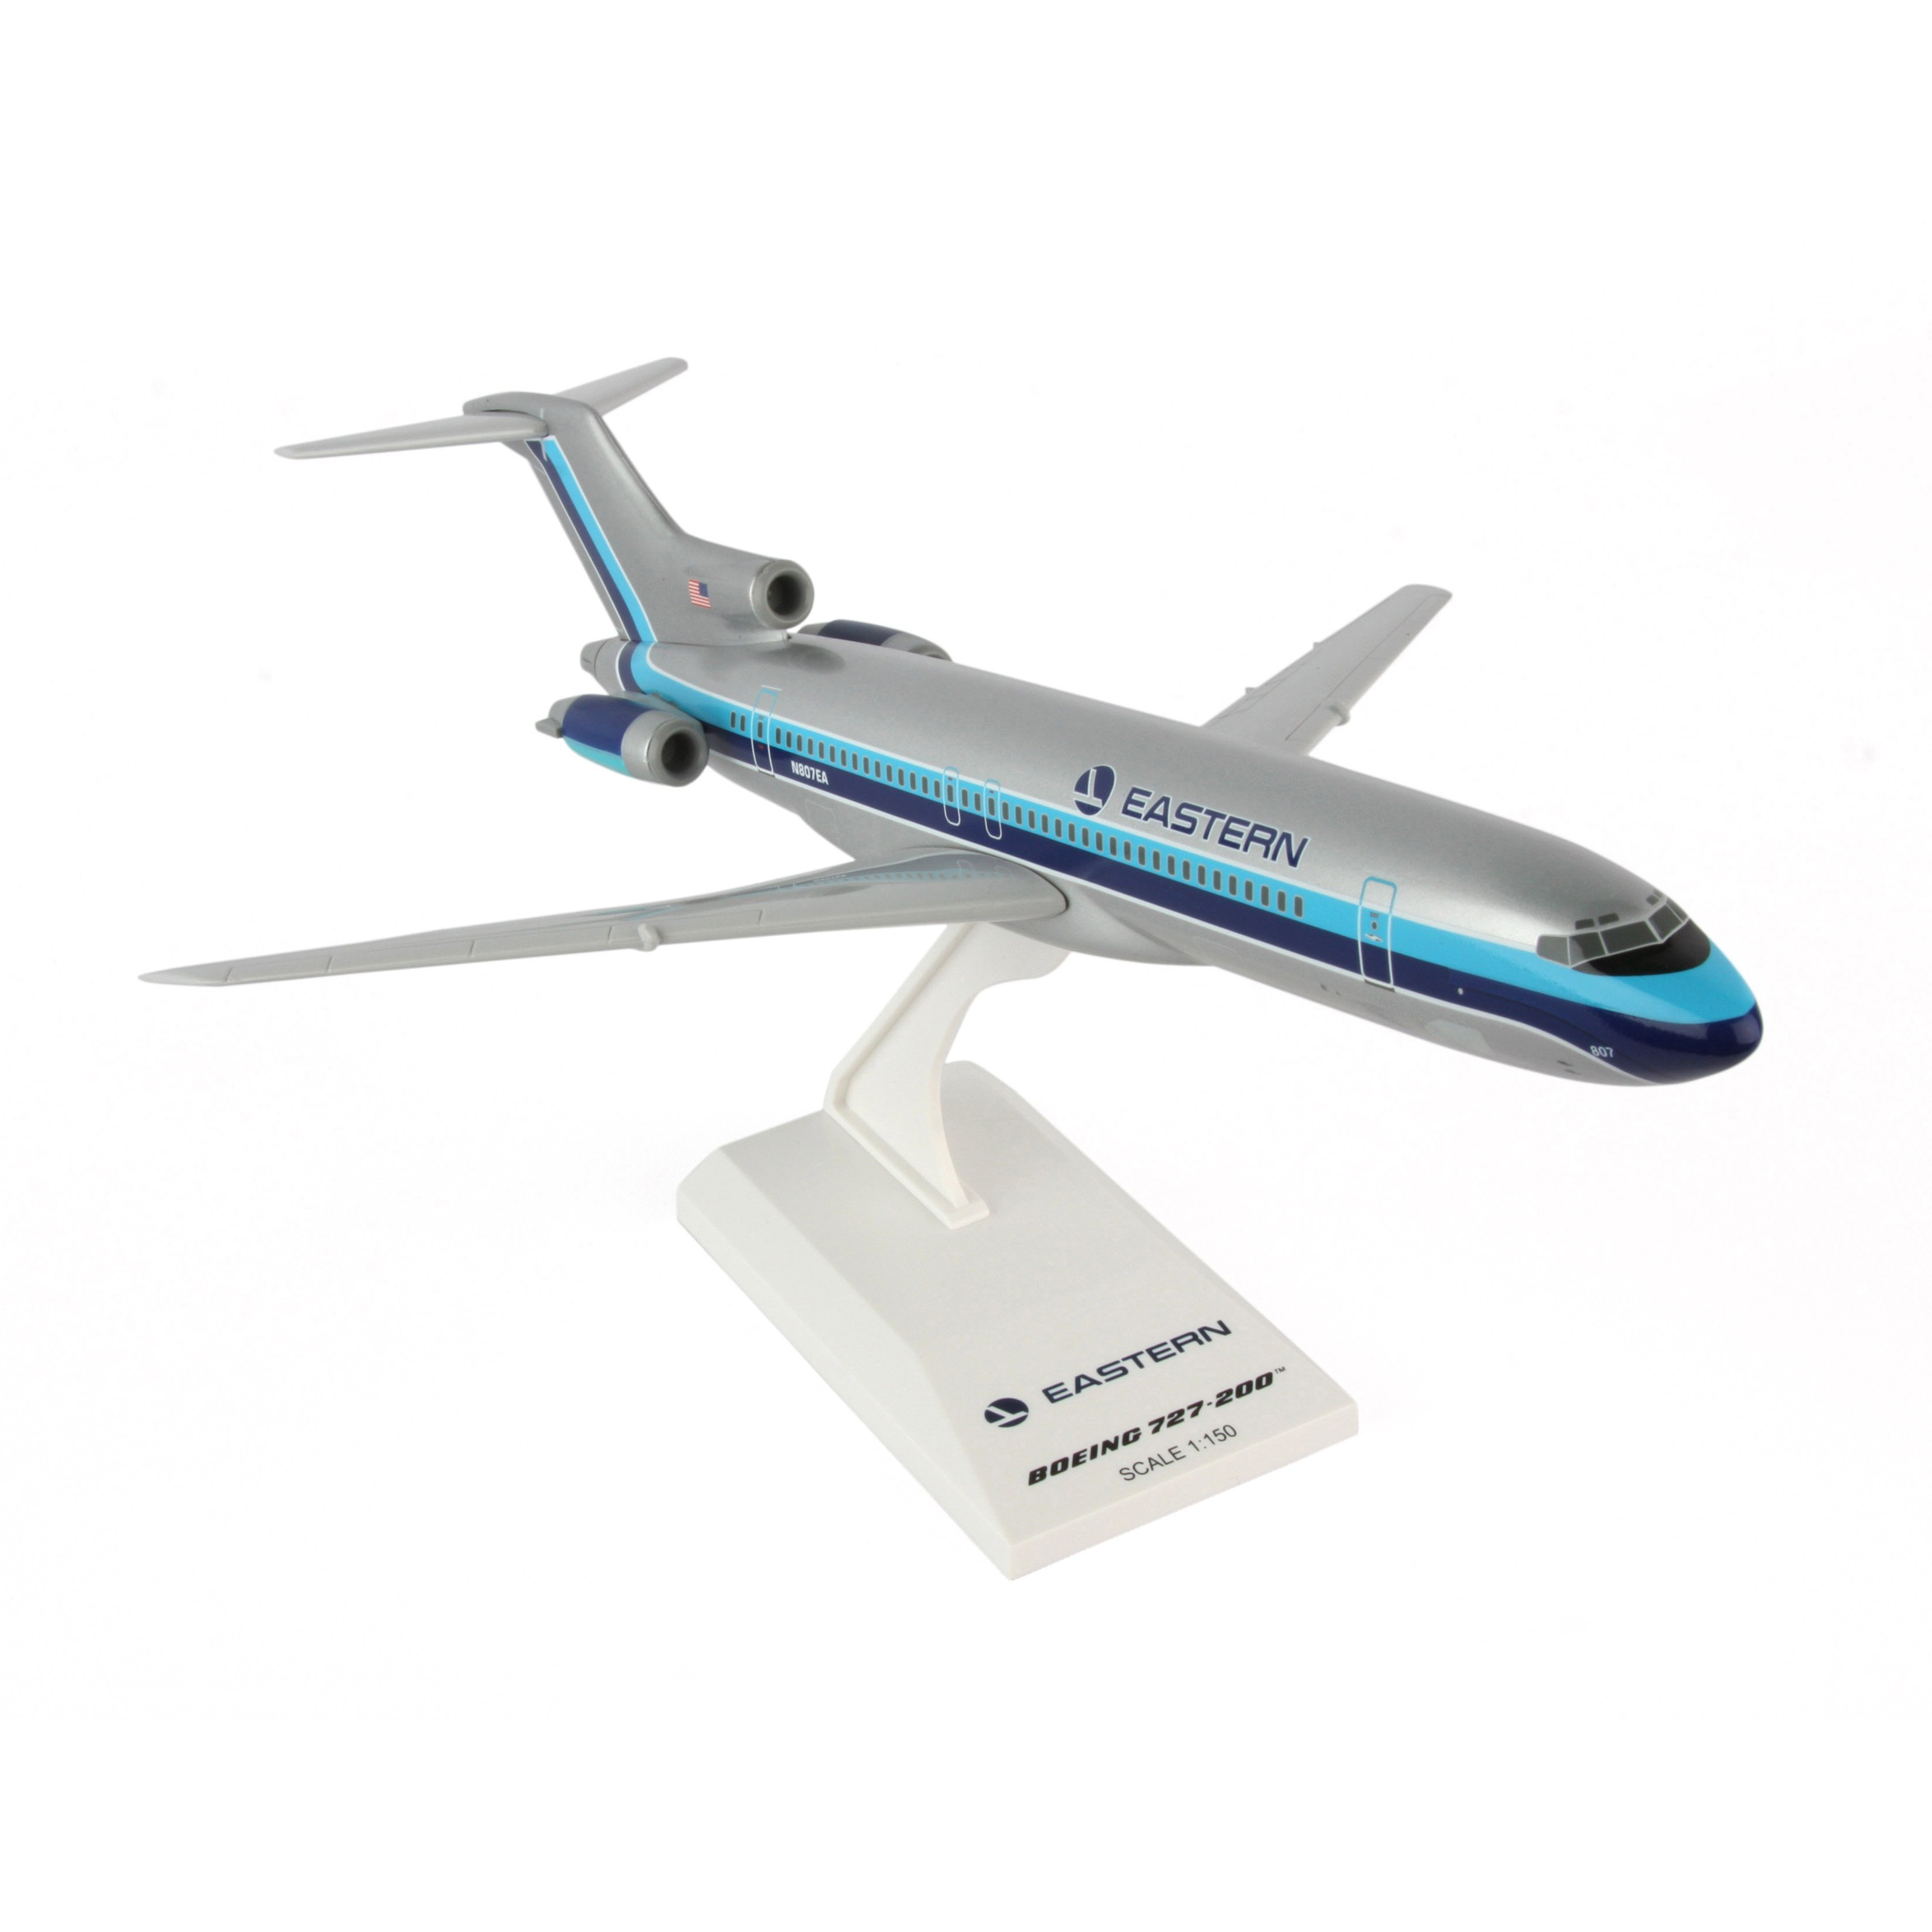 Skymarks Eastern 727-200 1 150 Model Airplane by Daron Worldwide Trading Inc